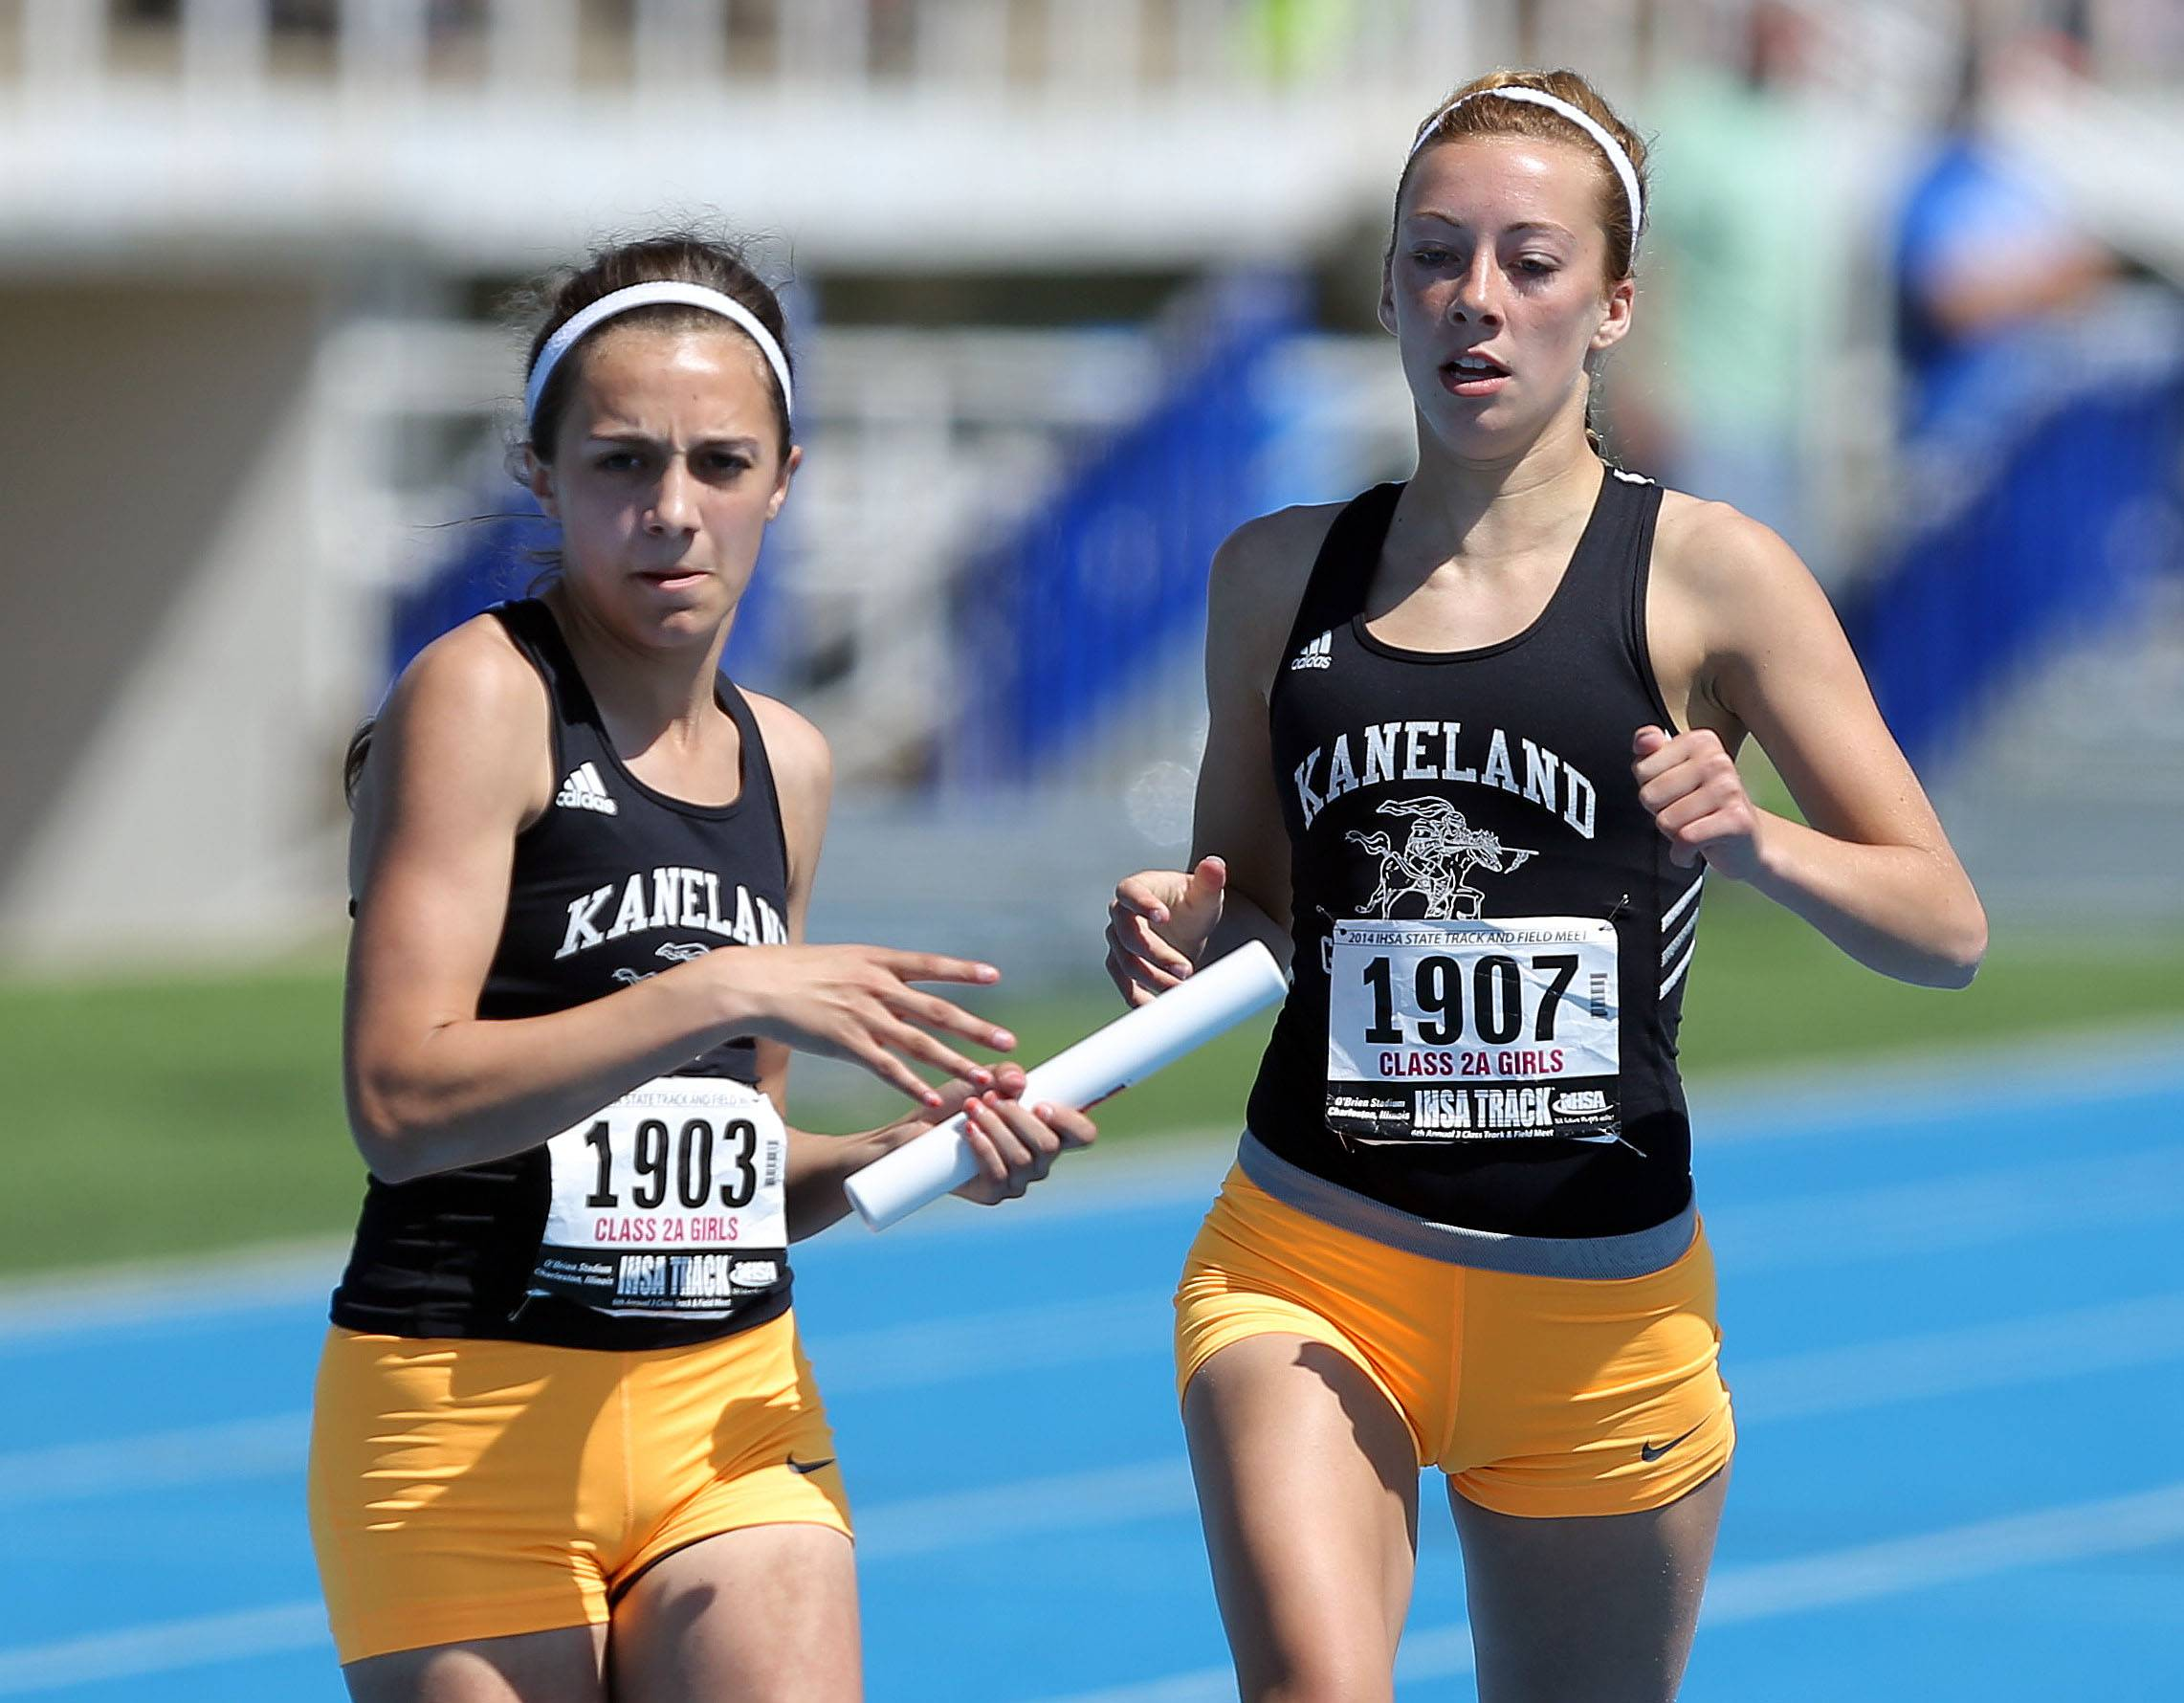 Kaneland's Allie Heinzer, left, takes the baton from Becca Richtman in the 4x200-meter relay during the prelims of the girls track and field state meet at Eastern Illinois University in Charleston Friday.